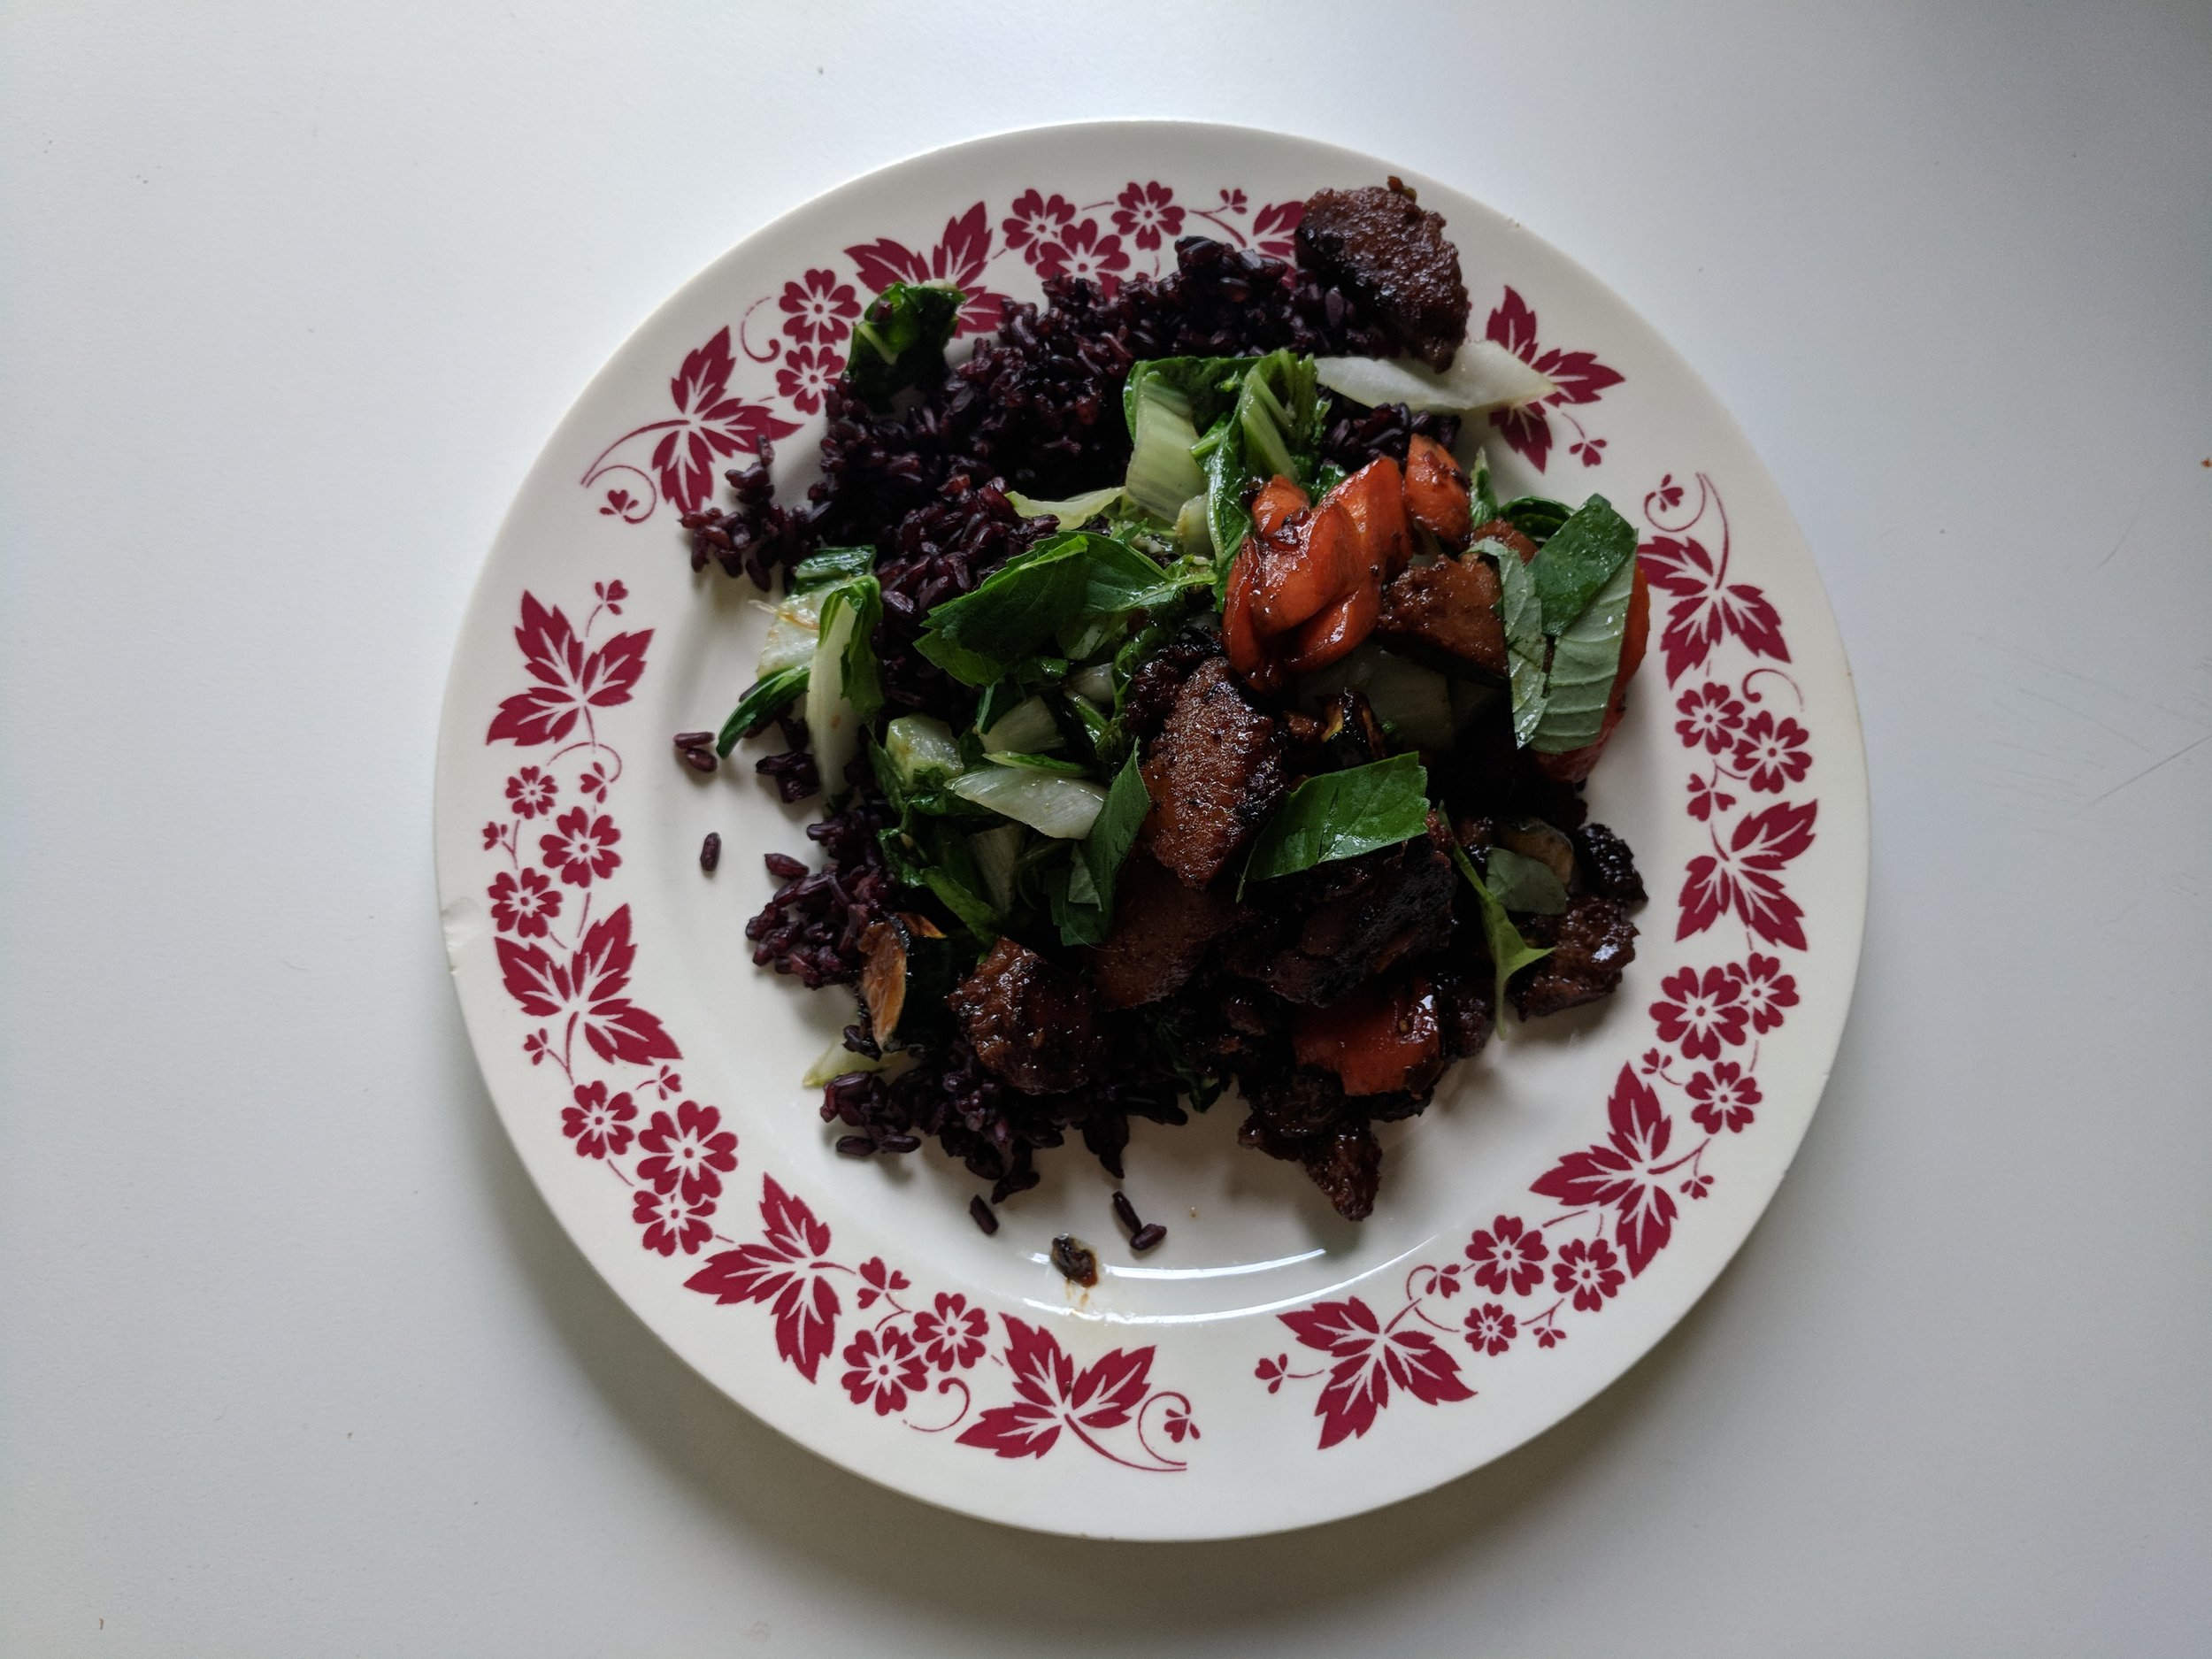 Ah, the not-so-photogenic power duo of night-time dining and black rice? : )